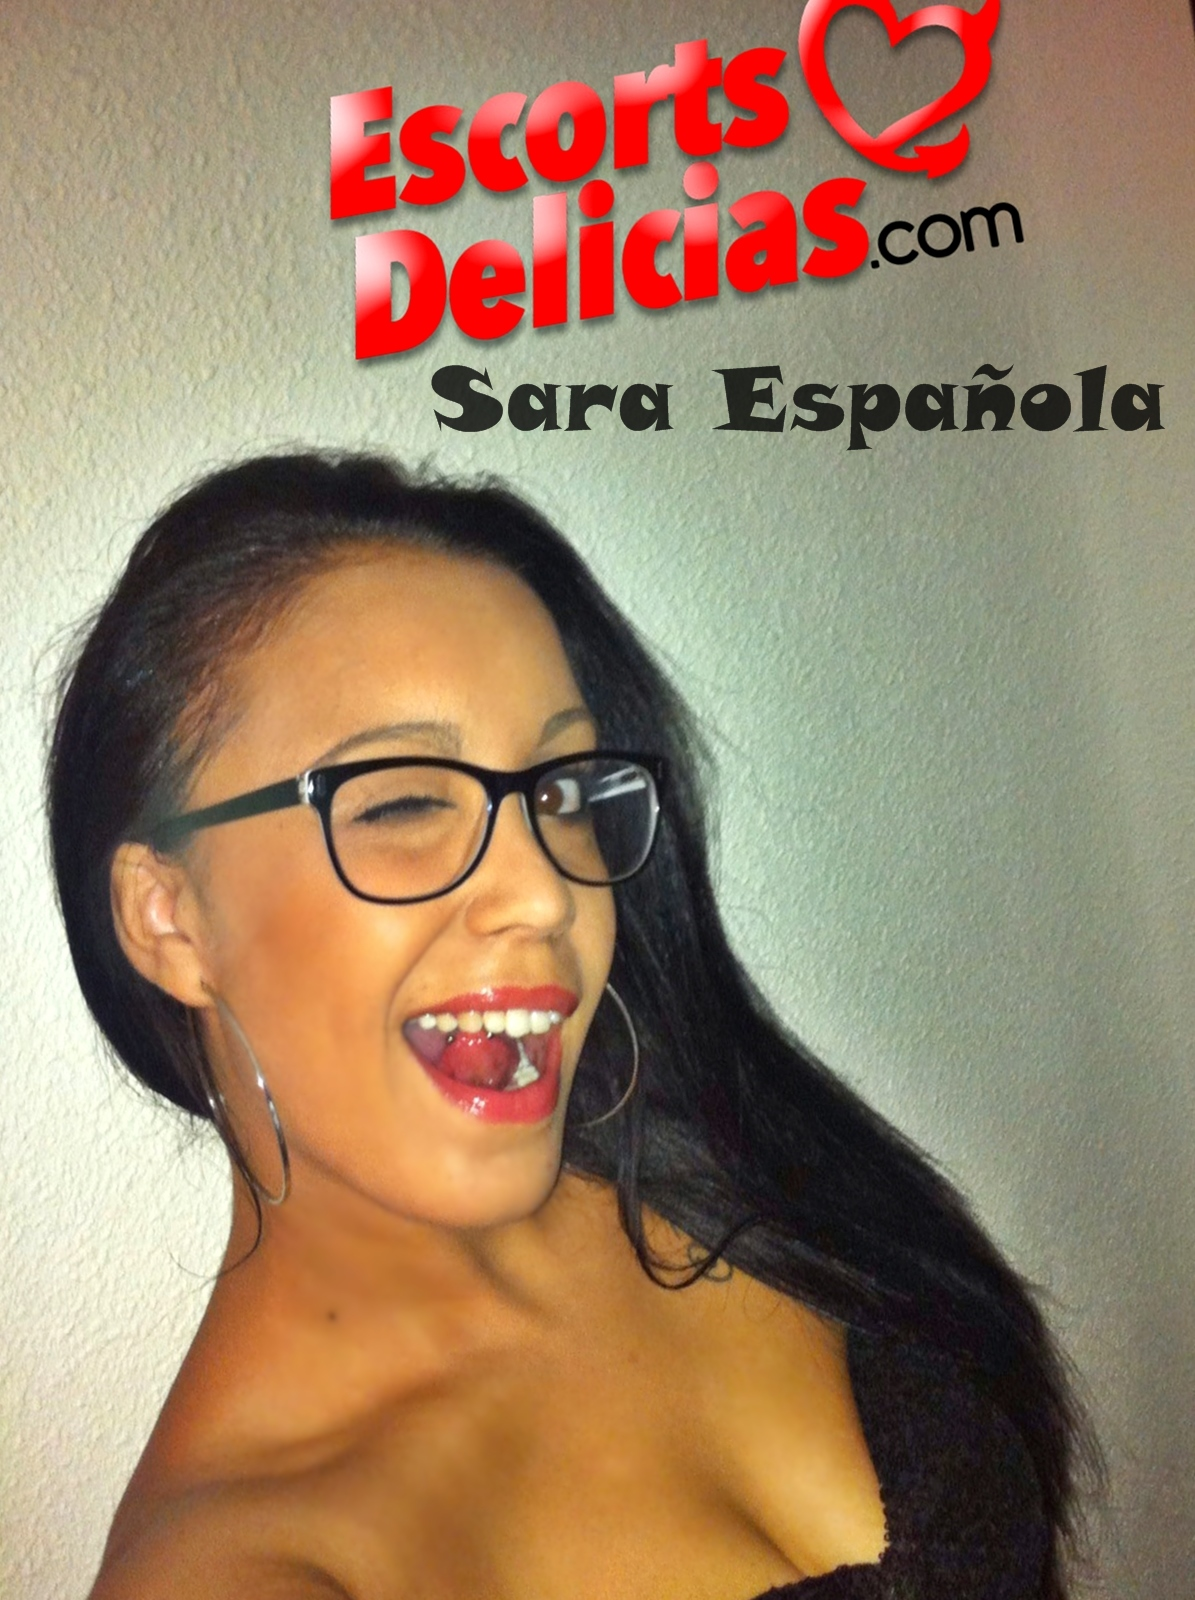 ESCORTSDELICIAS.COM 24 HORAS